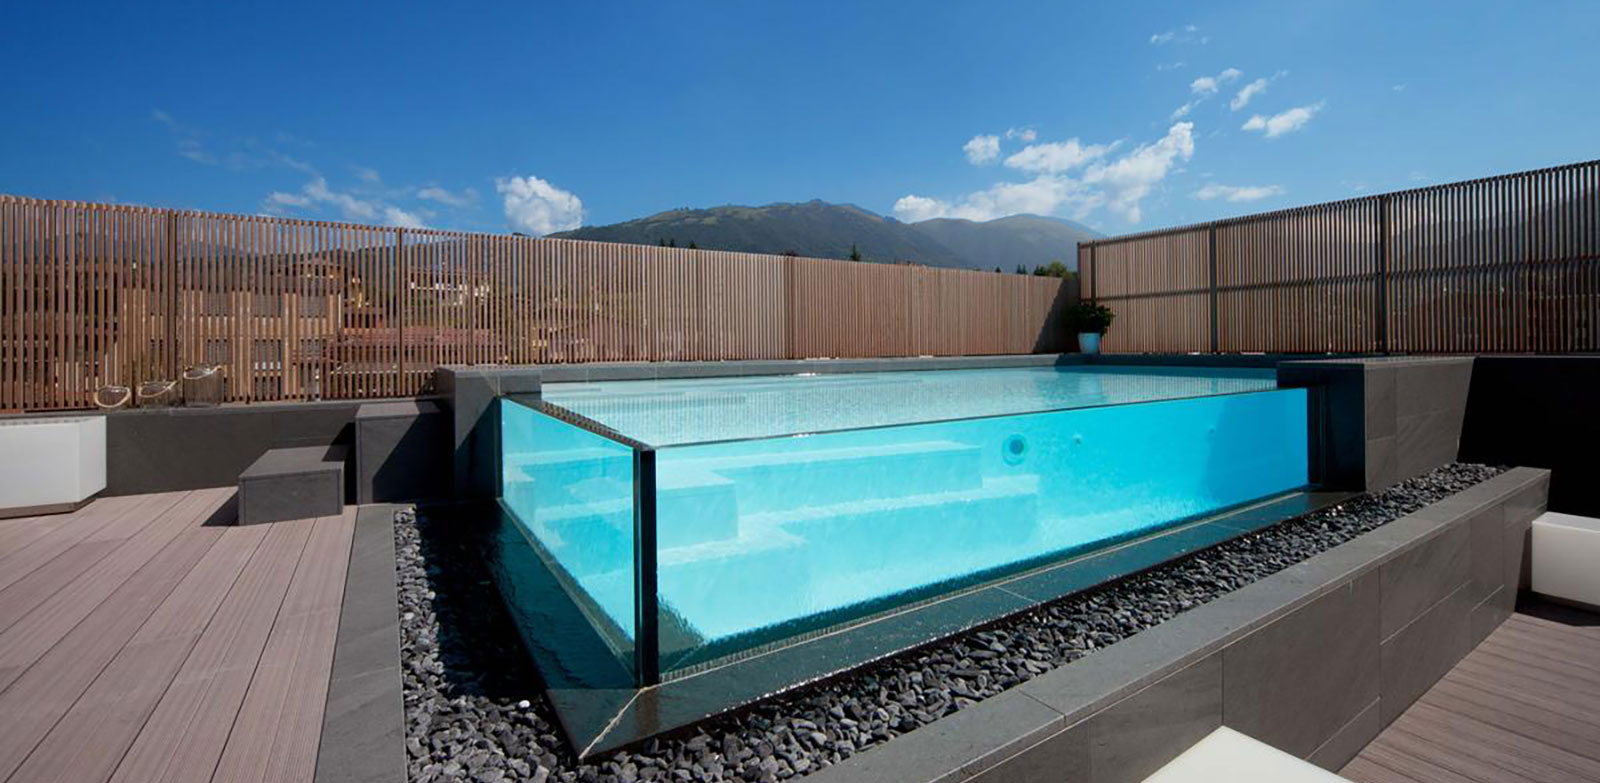 Piscine bordo sfioro crystal piscine dess for Piscine or